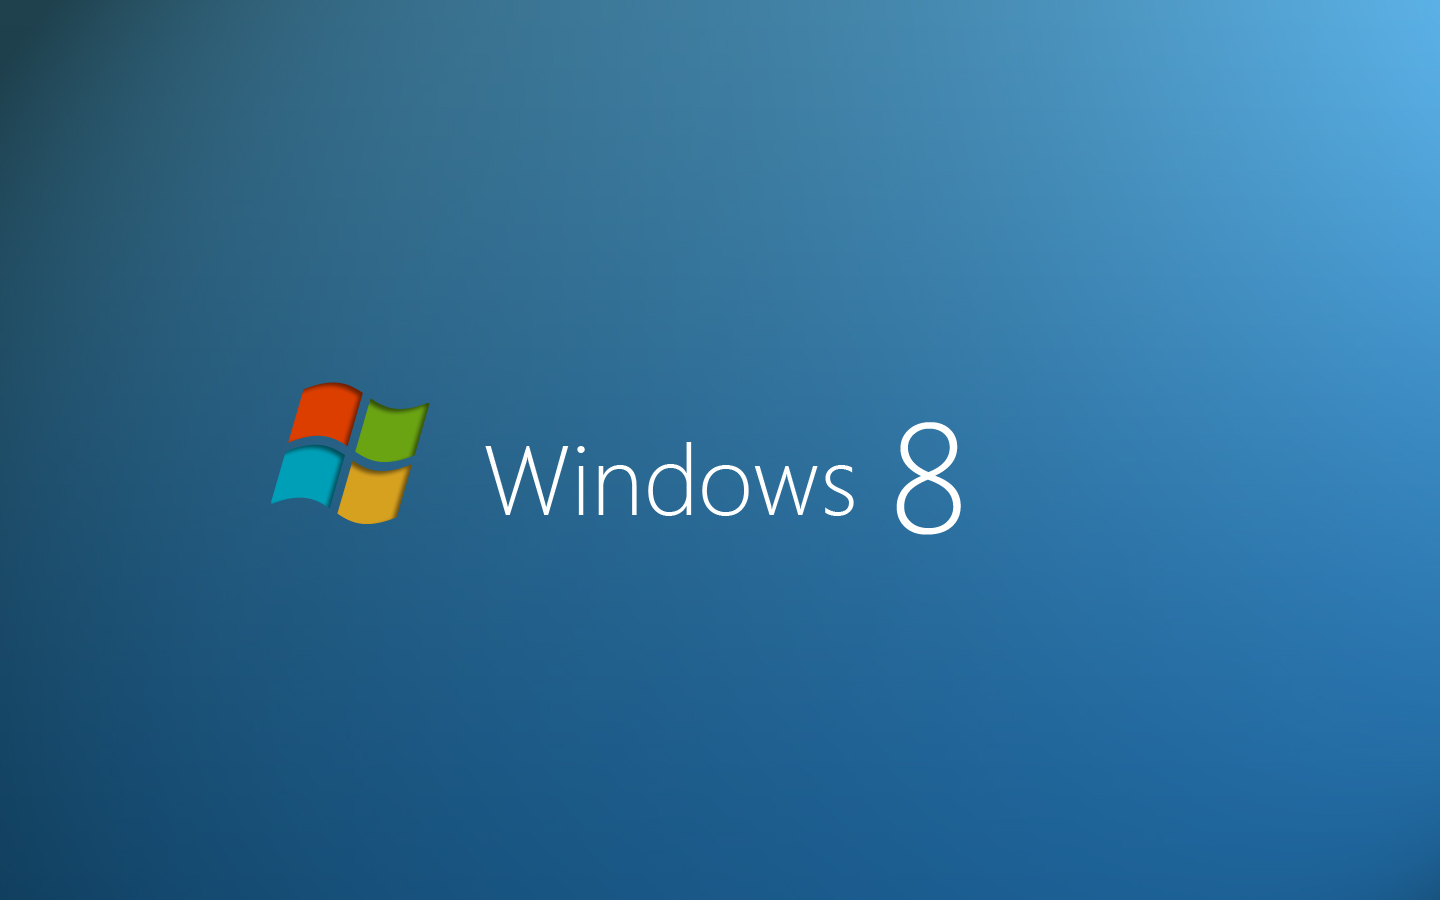 Windows 8 Wallpapers Release: 23 Windows 8 Wallpapers